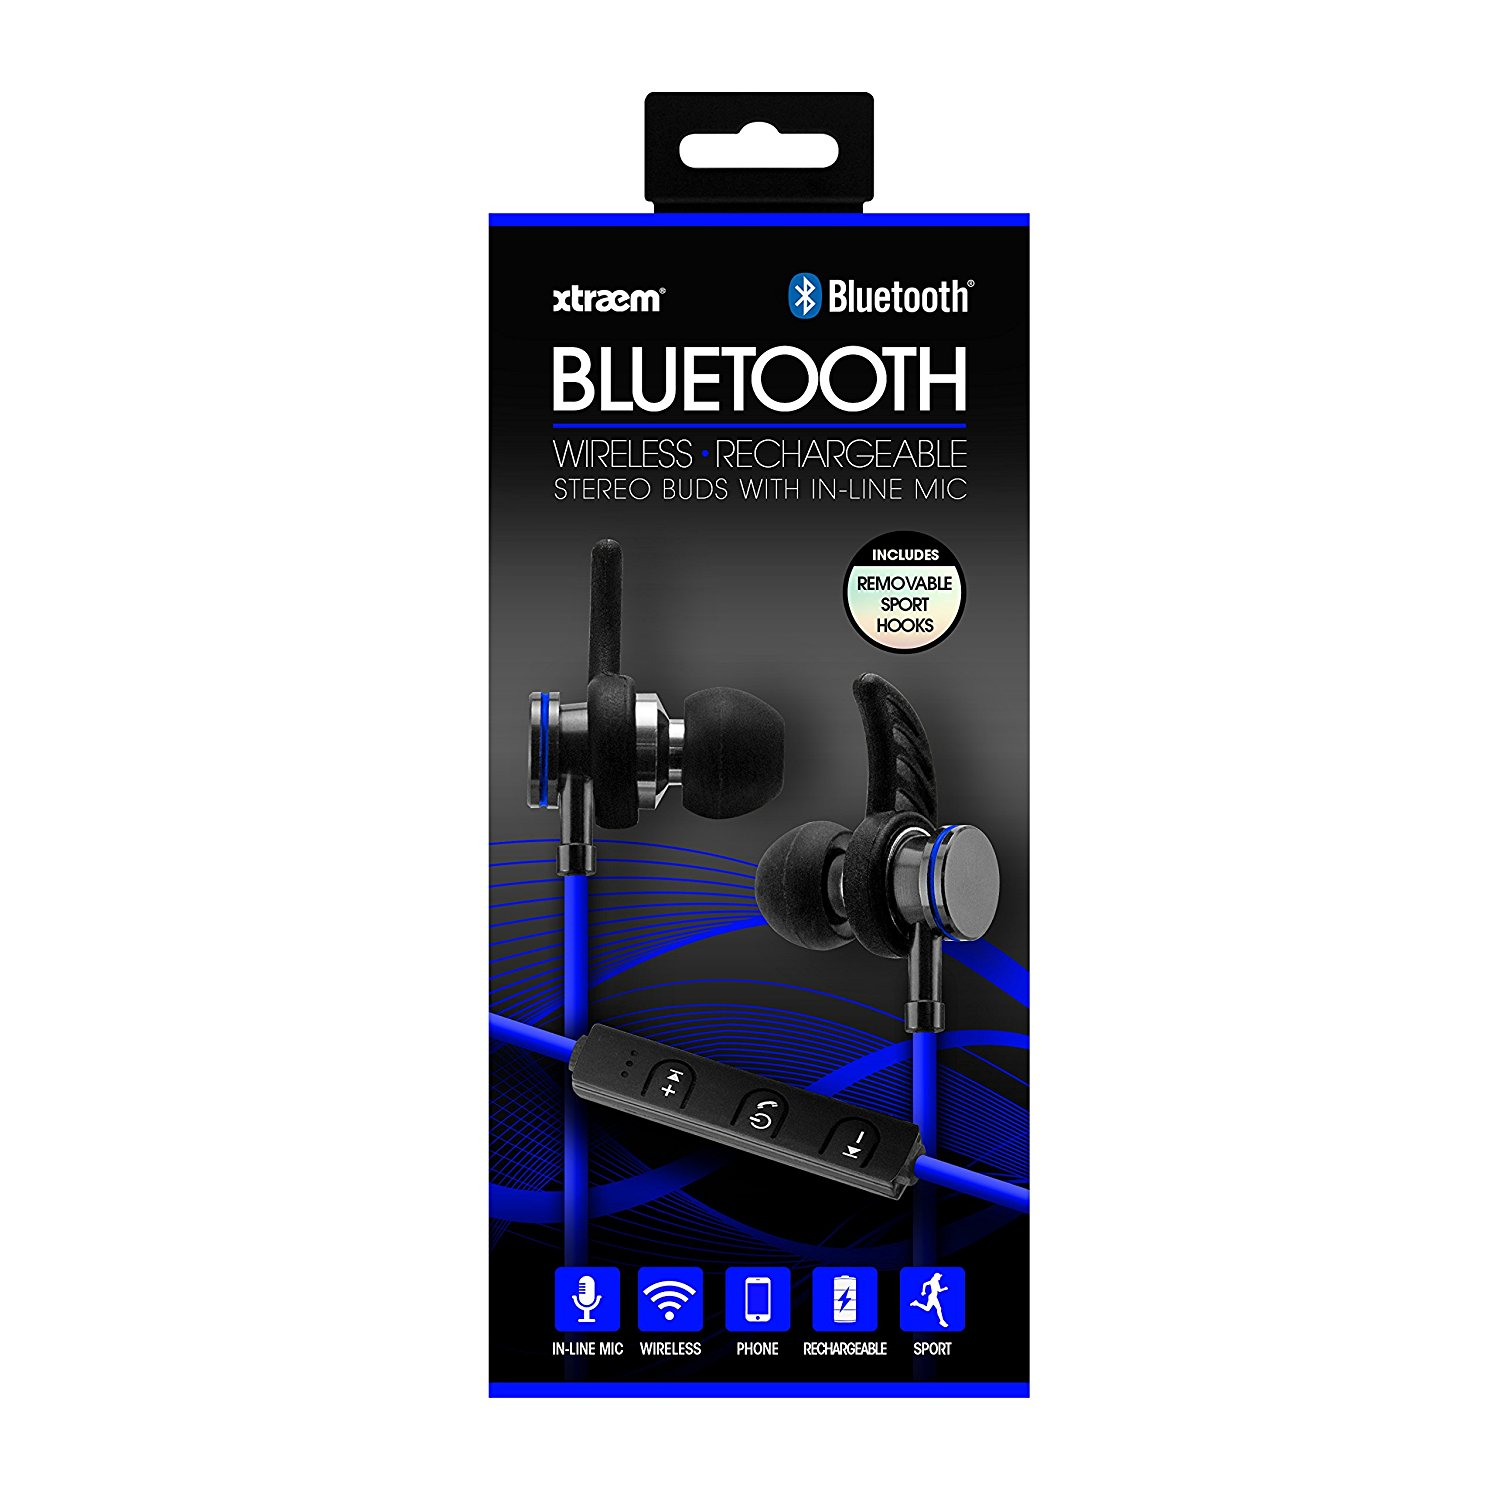 c52403e9567 Details about Sentry Bluetooth, Rechargeable, Metal Ear Buds with Built In  Microphone, BX250BL